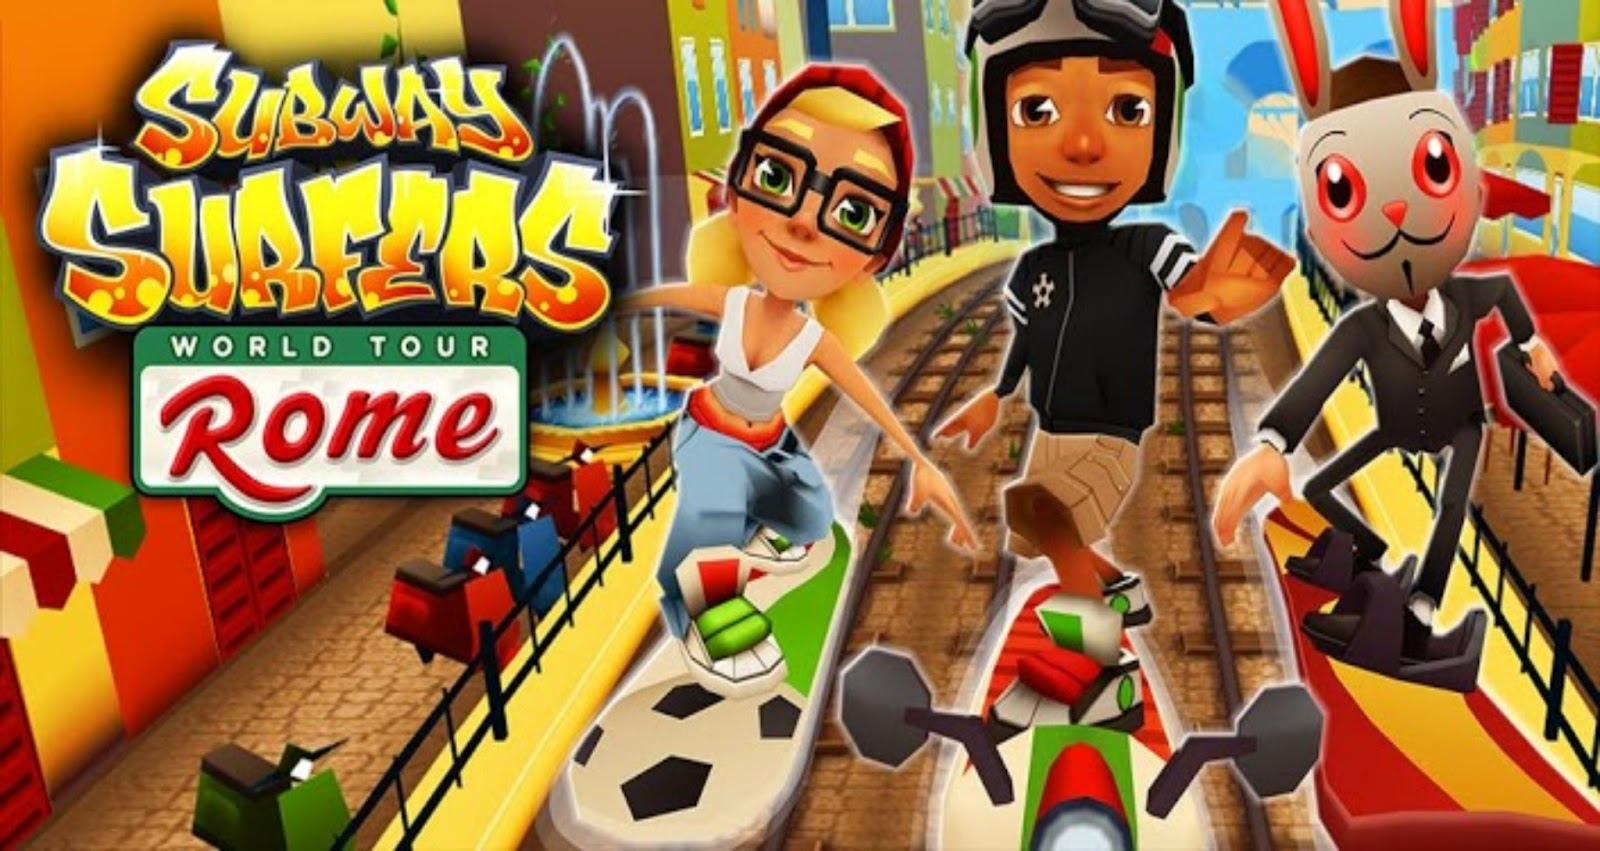 Subway Surfers v1.8.0 Apk | Android Games Download